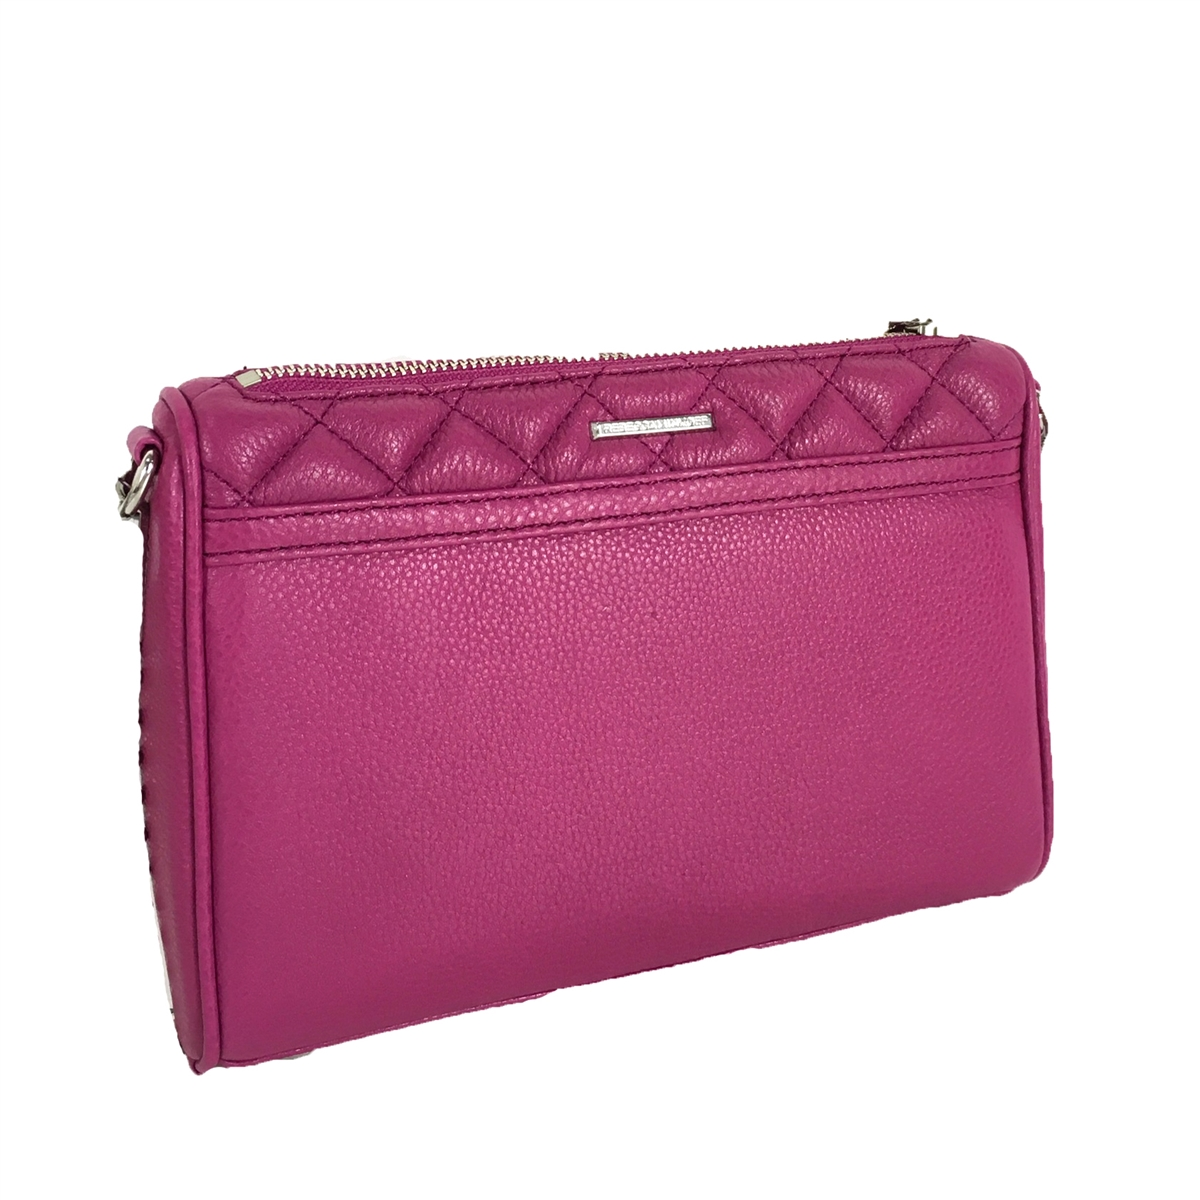 Tiny Home Designs: Rebecca Minkoff Mini MAC Quilted Leather Clutch Crossbody